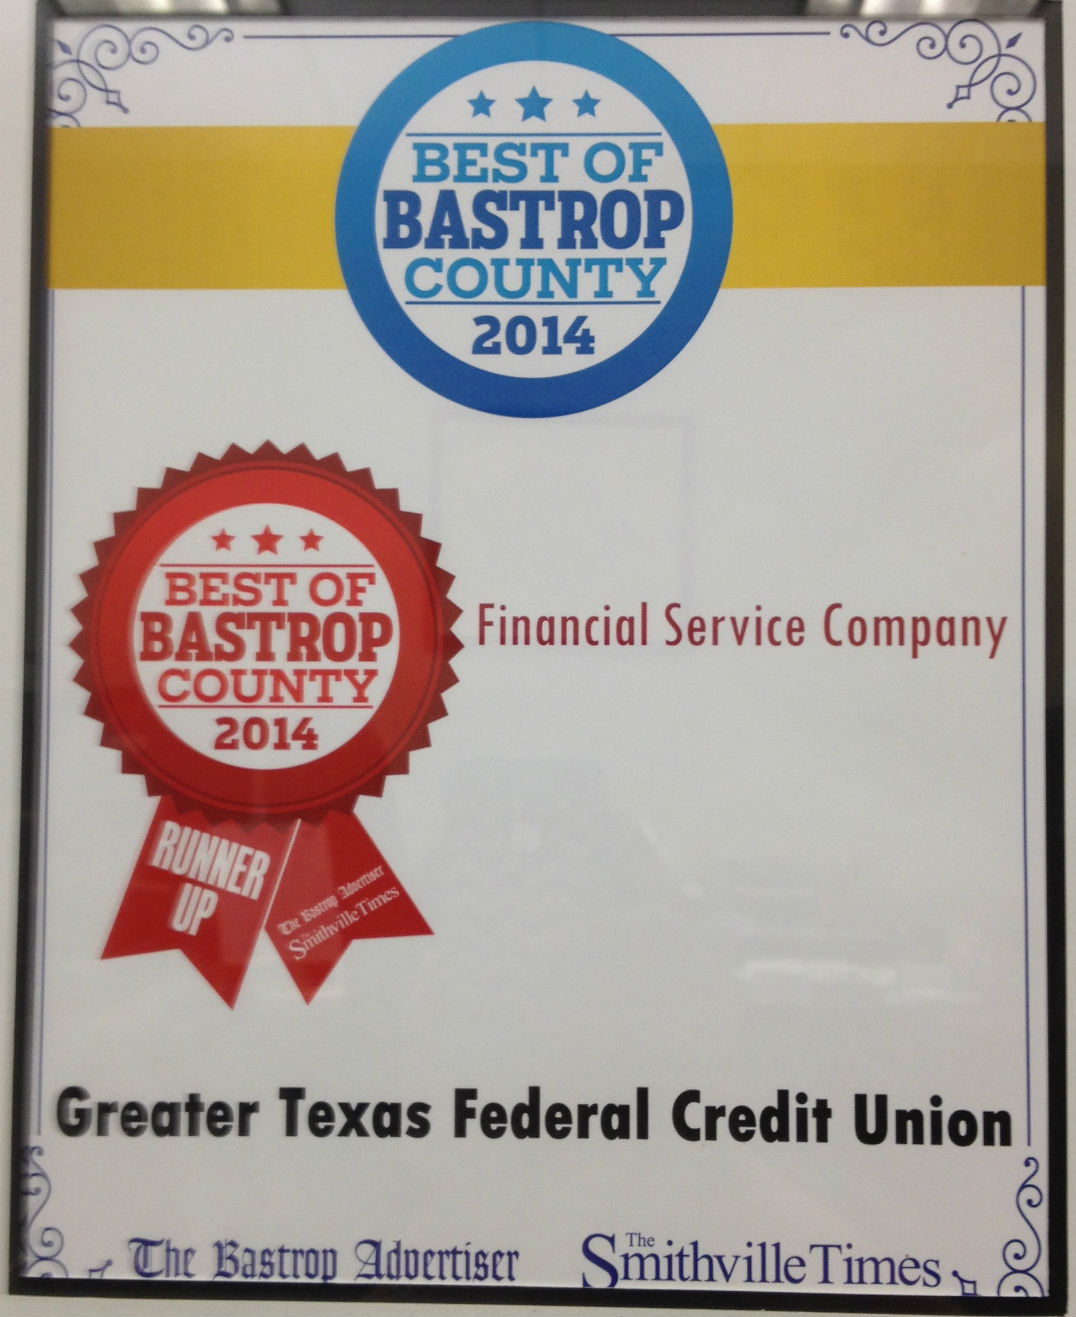 Greater TEXAS Federal Credit Union voted Runner Up as BEST